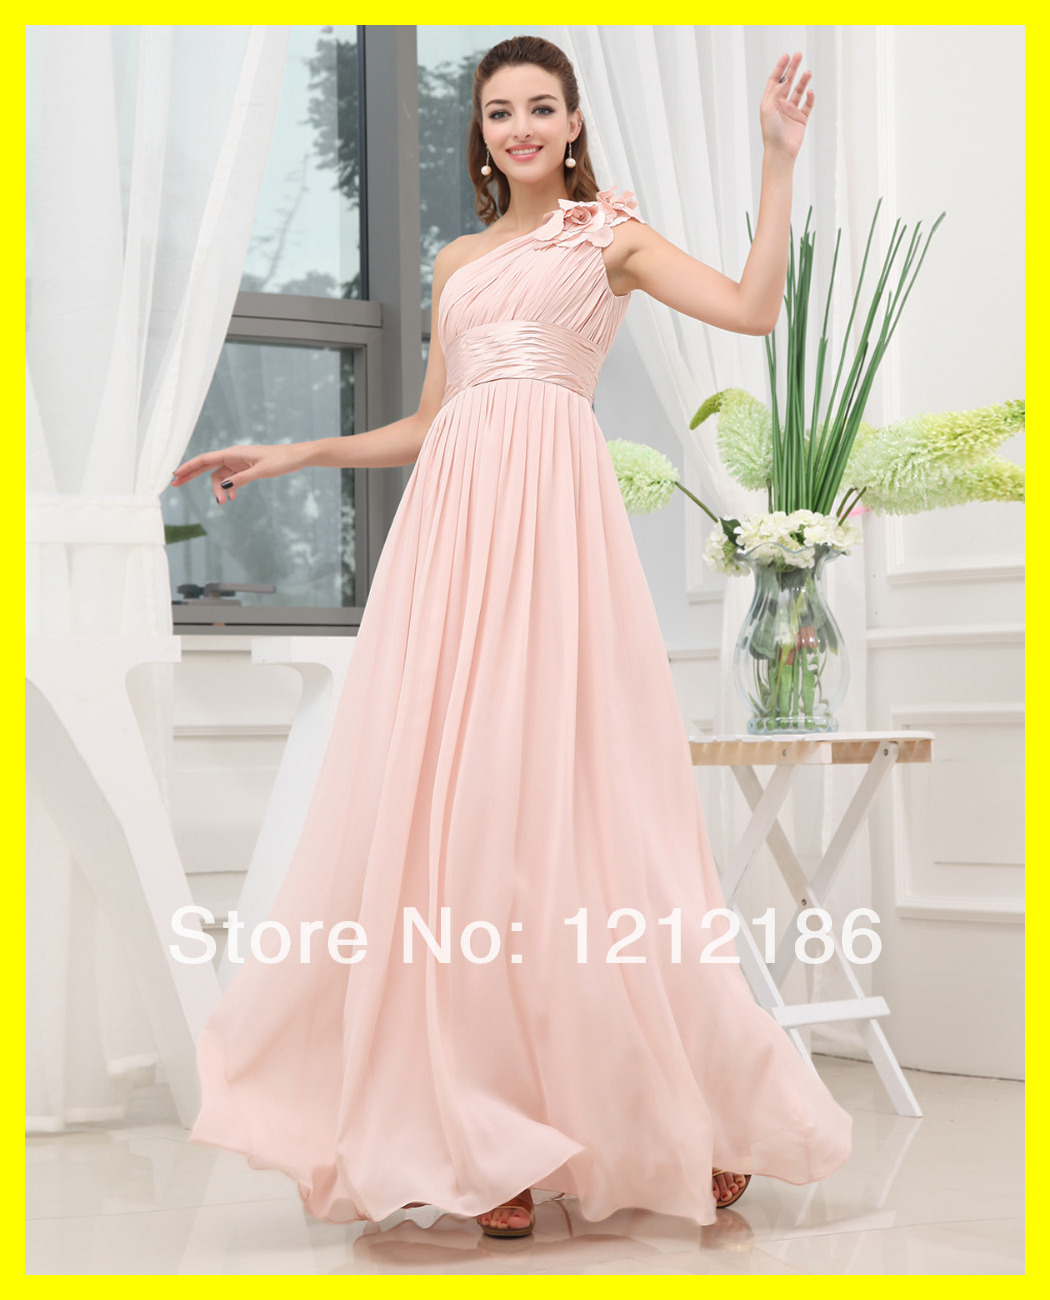 Bridesmaid dresses pink beach maternity uk long under for Maternity wedding dresses under 100